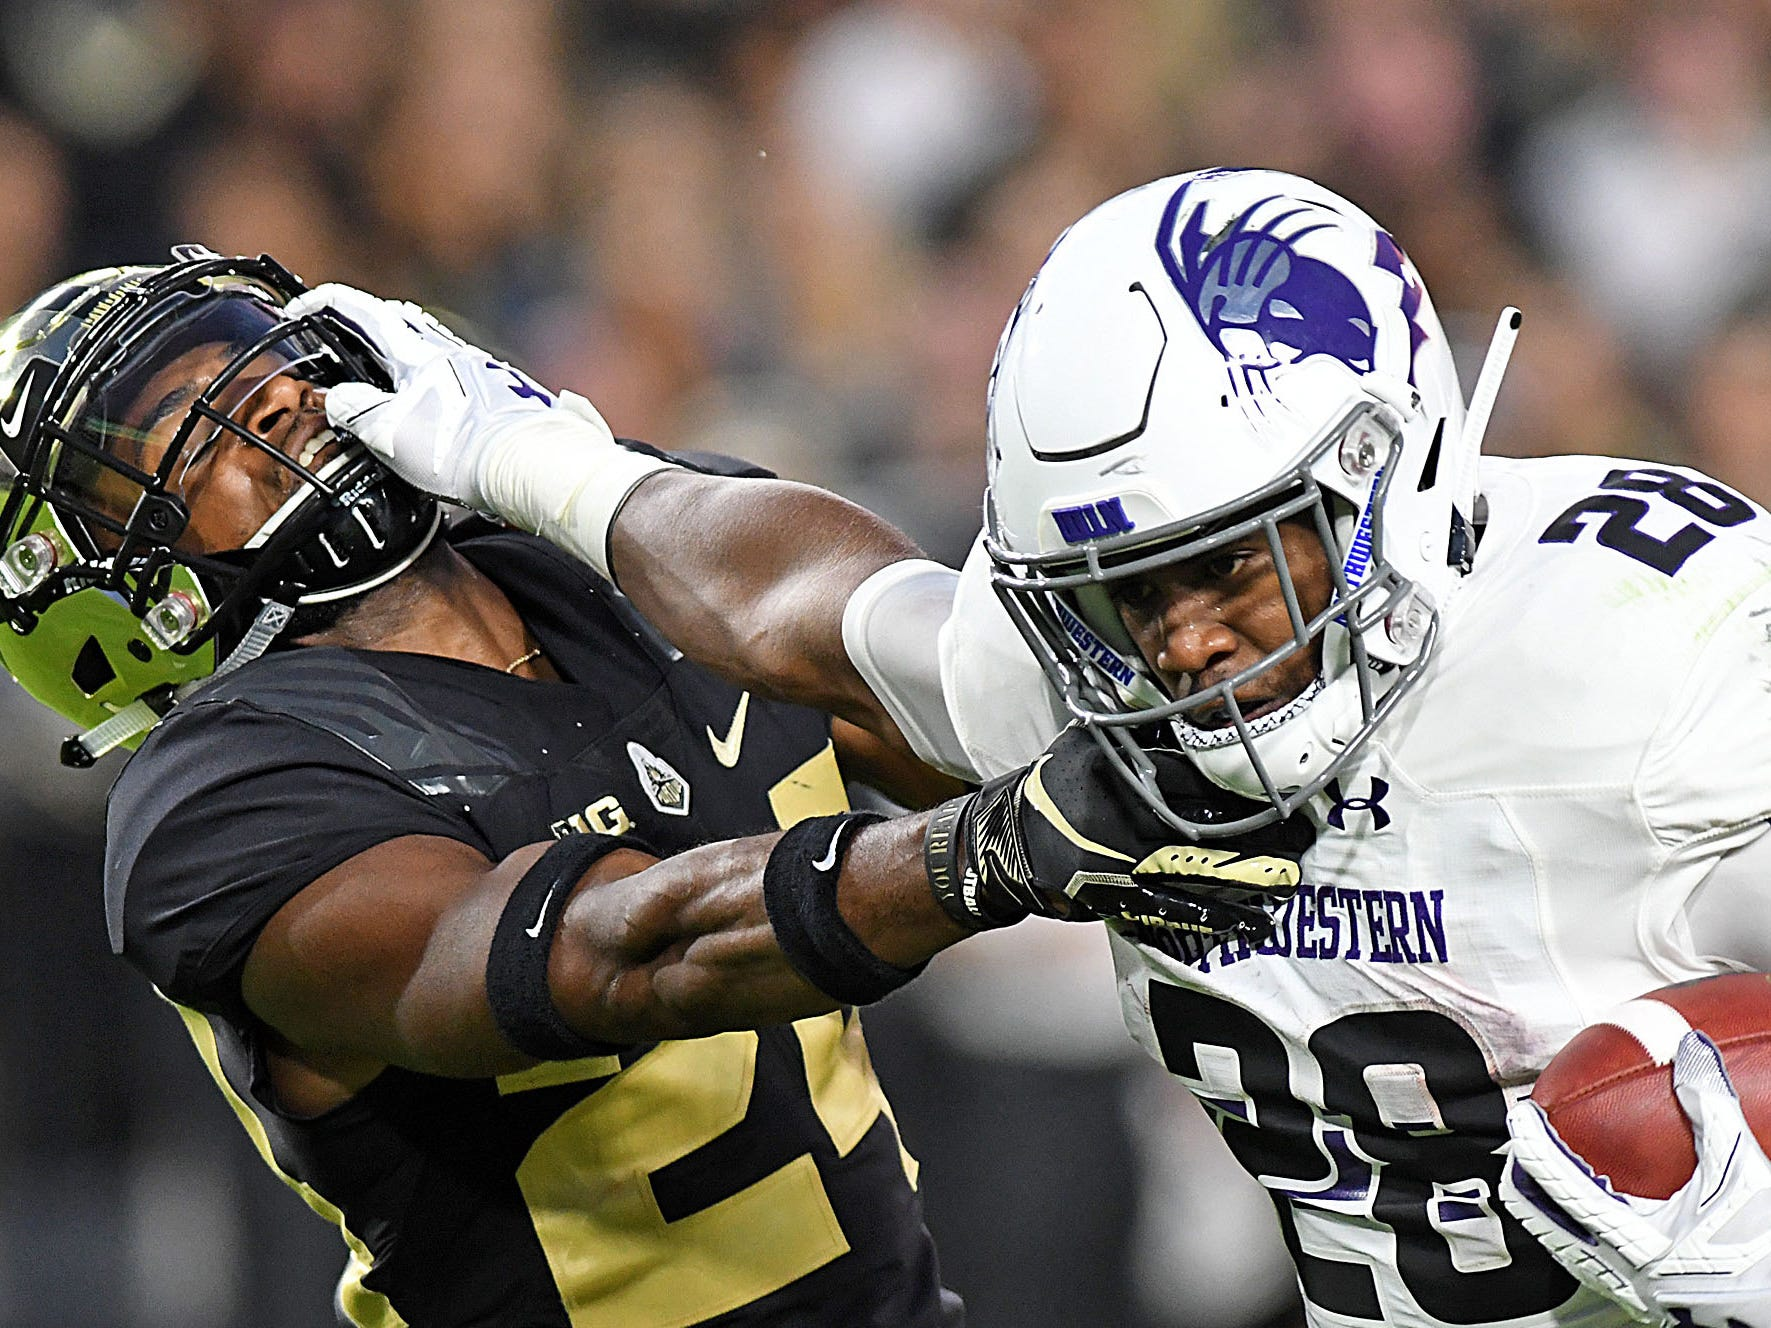 Northwestern running back Jeremy Larkin stiff arms  Purdue cornerback Tim Carson in the first half at Ross-Ade Stadium.